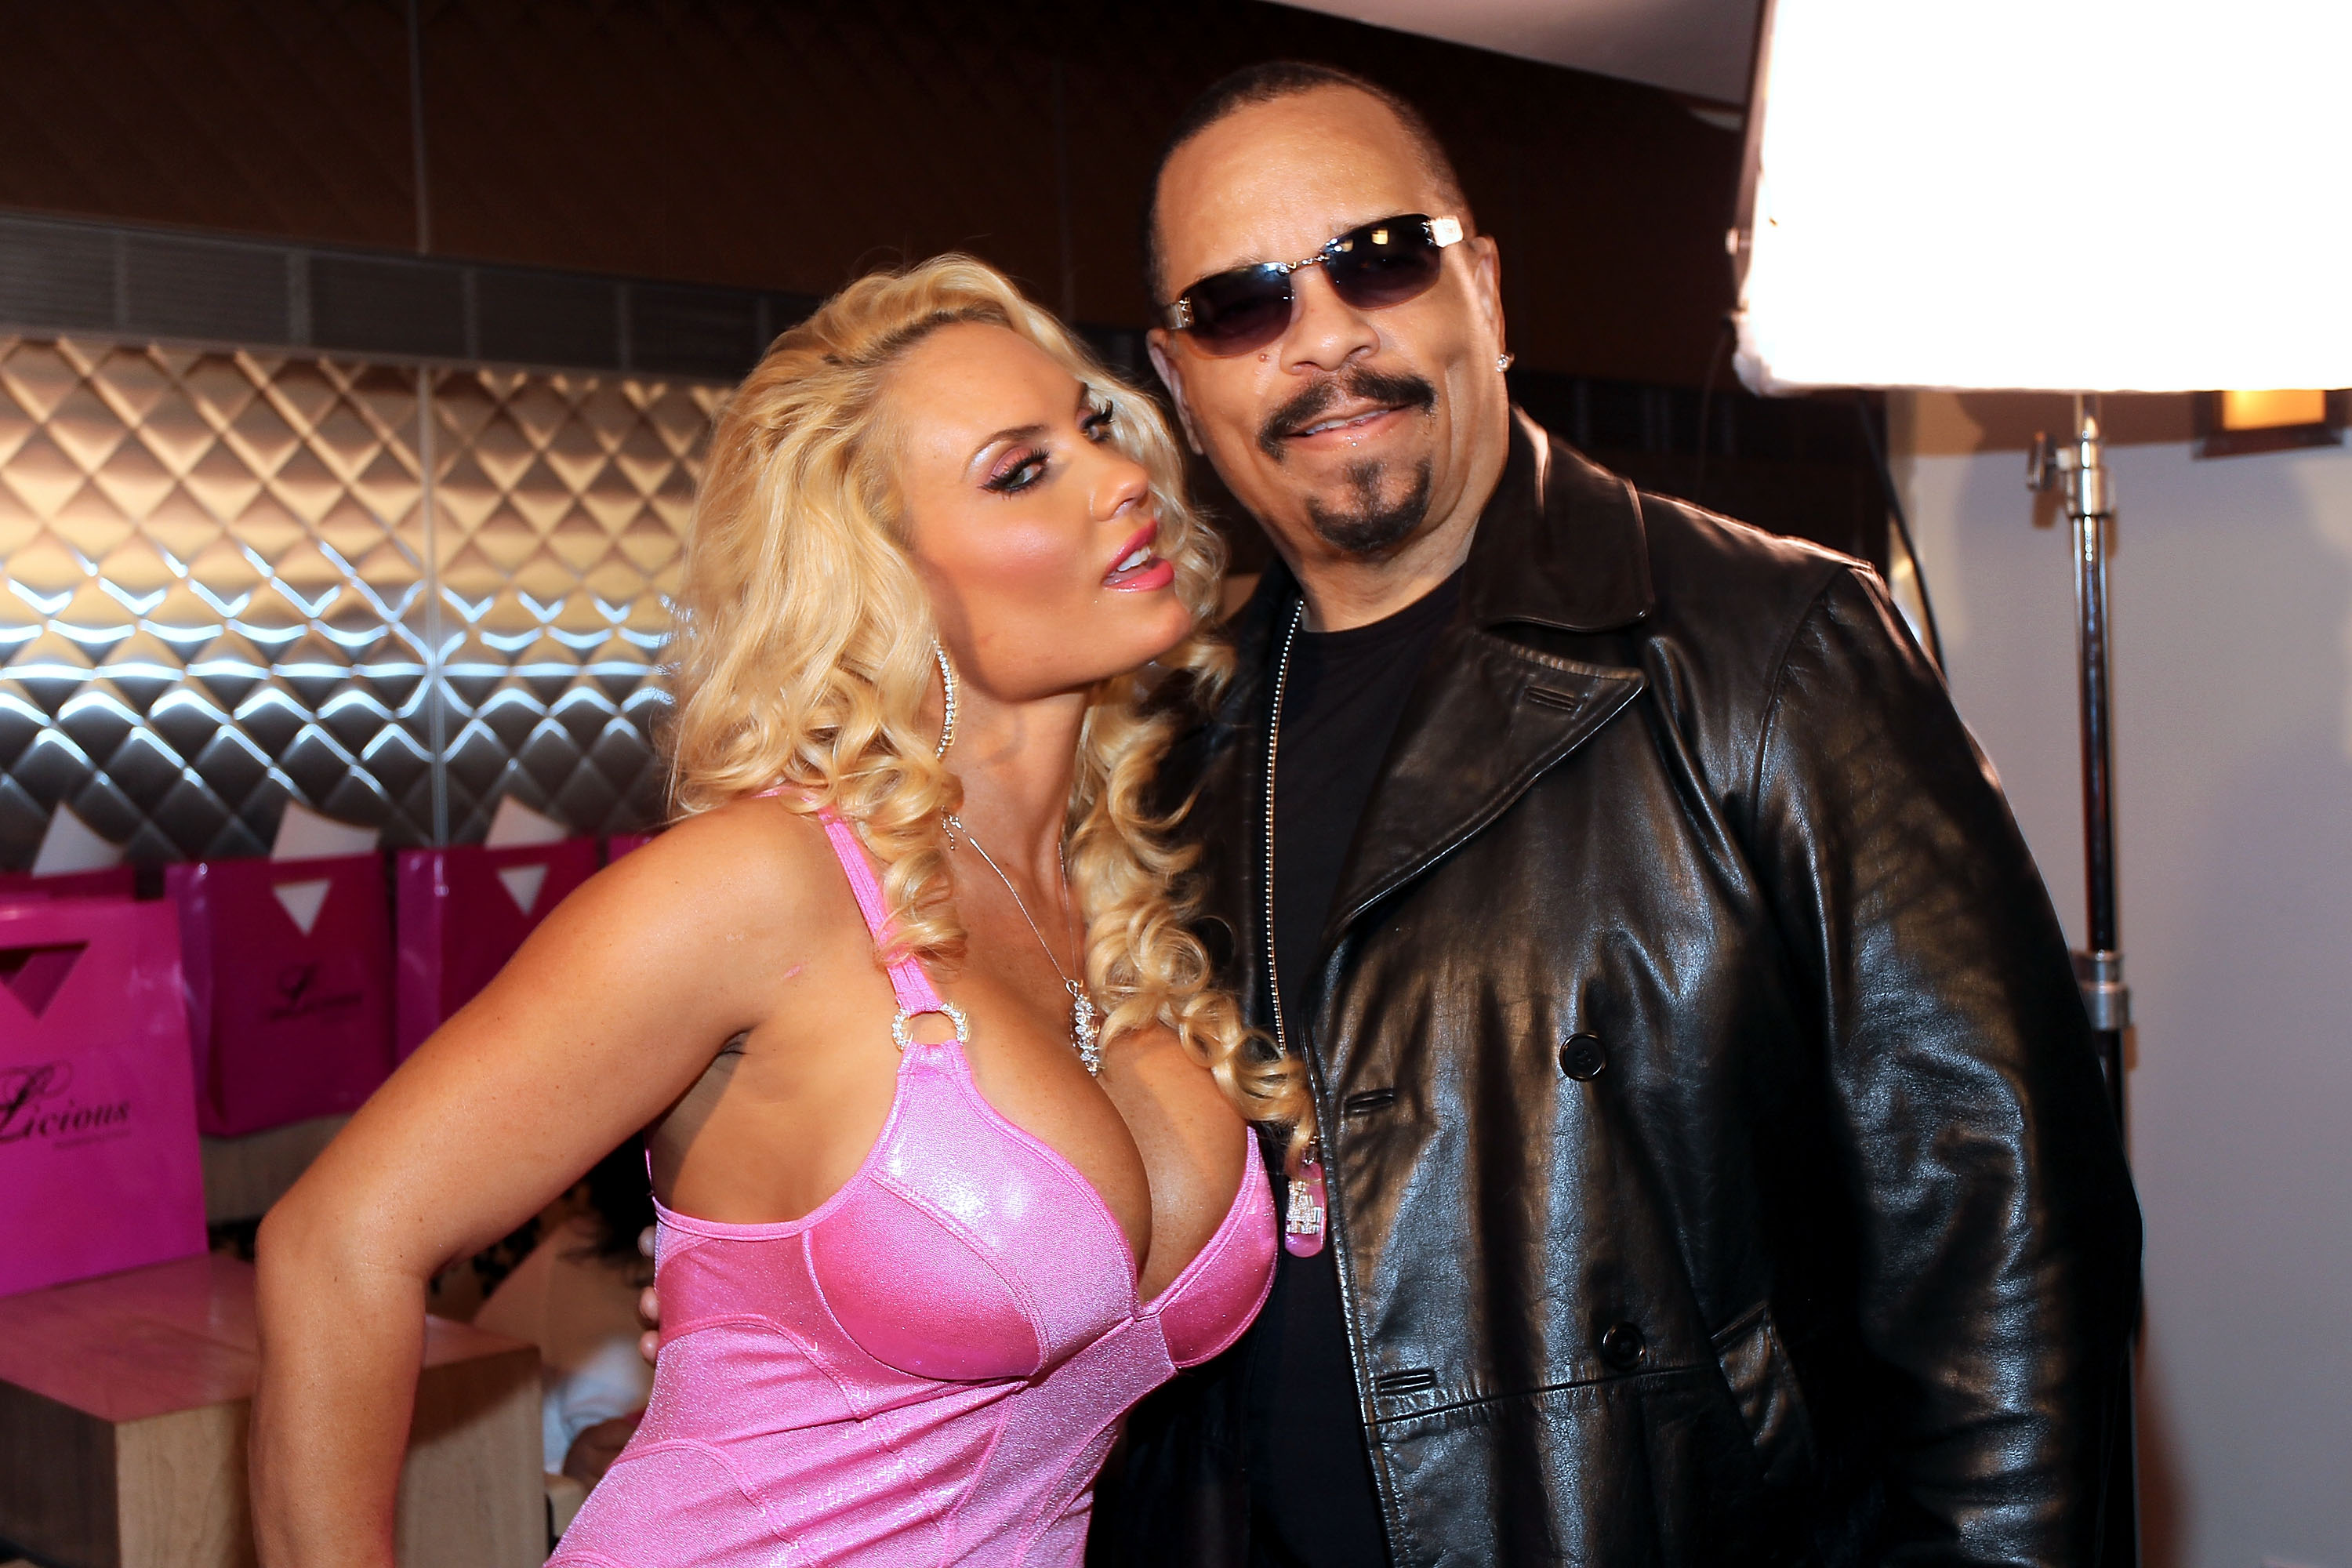 NEW YORK, NY - MAY 22:  Coco and Ice-T attend the Coco Licious Clothing launch party at the Grace Hotel on May 22, 2011 in Ne